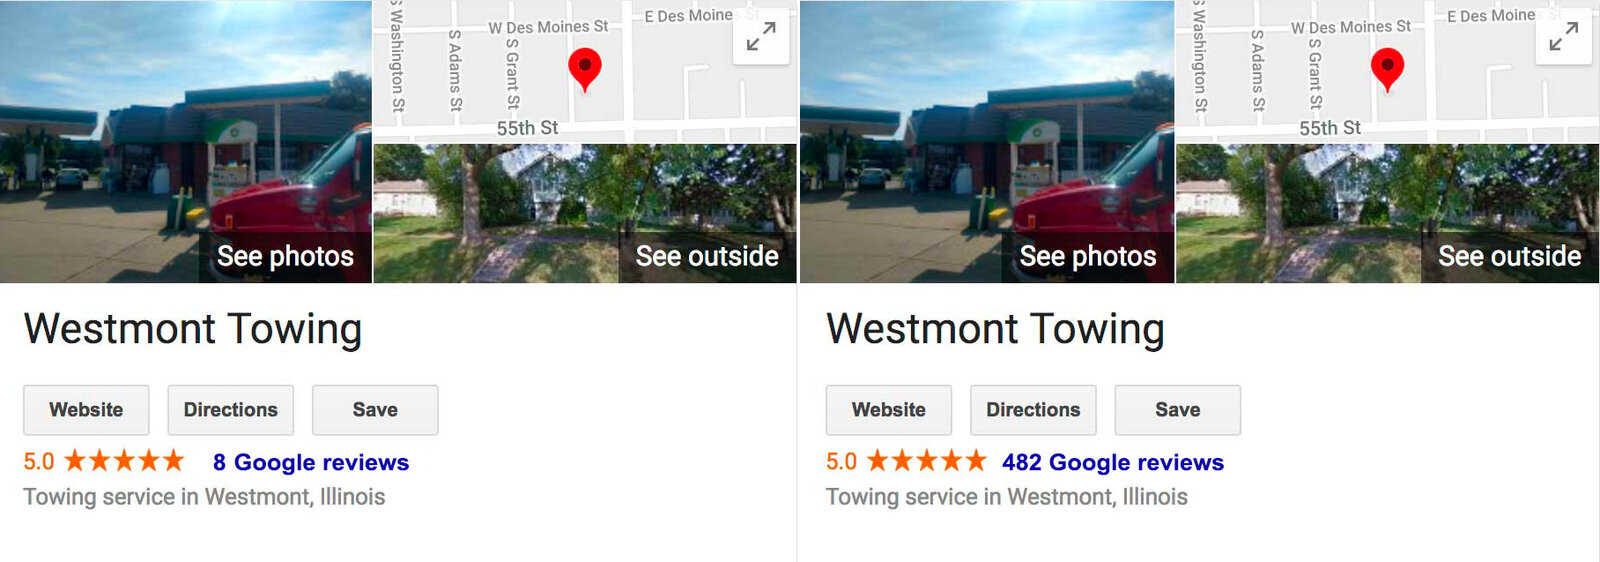 Westmont-Before-&-After.jpg